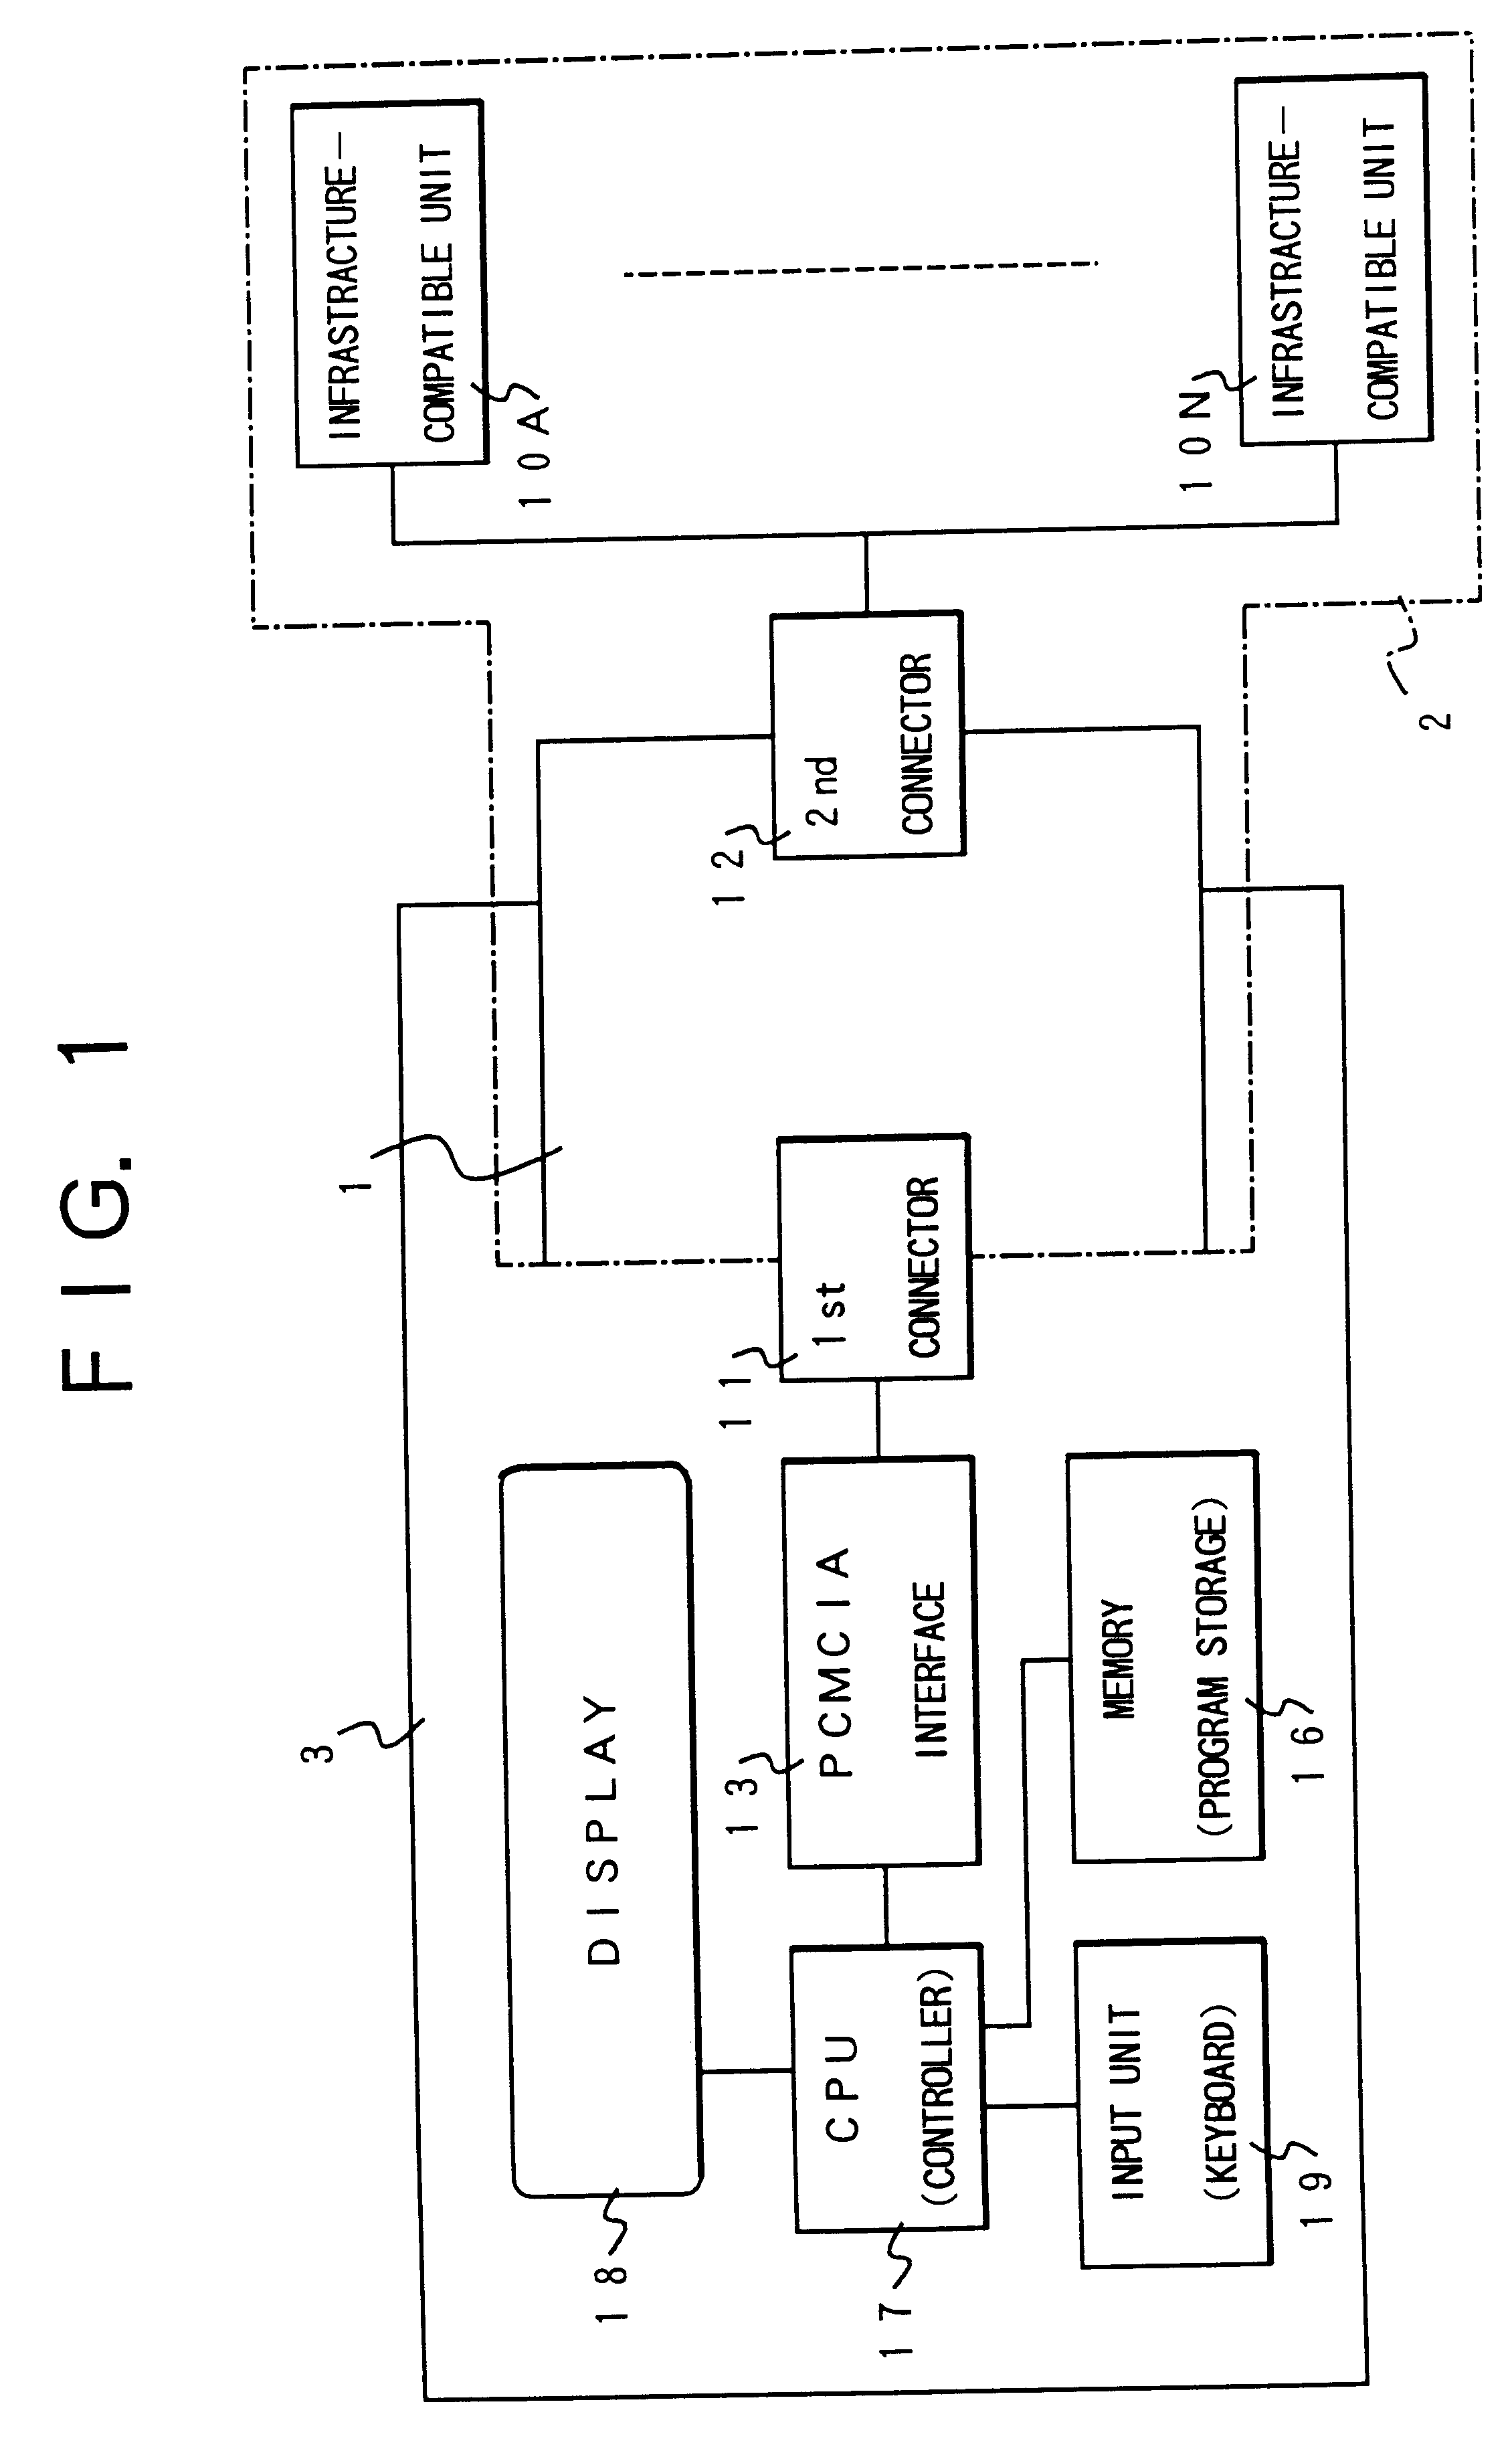 Patent Us6463095 Ic Card Radio Modem And Communication System Circuit Drawing